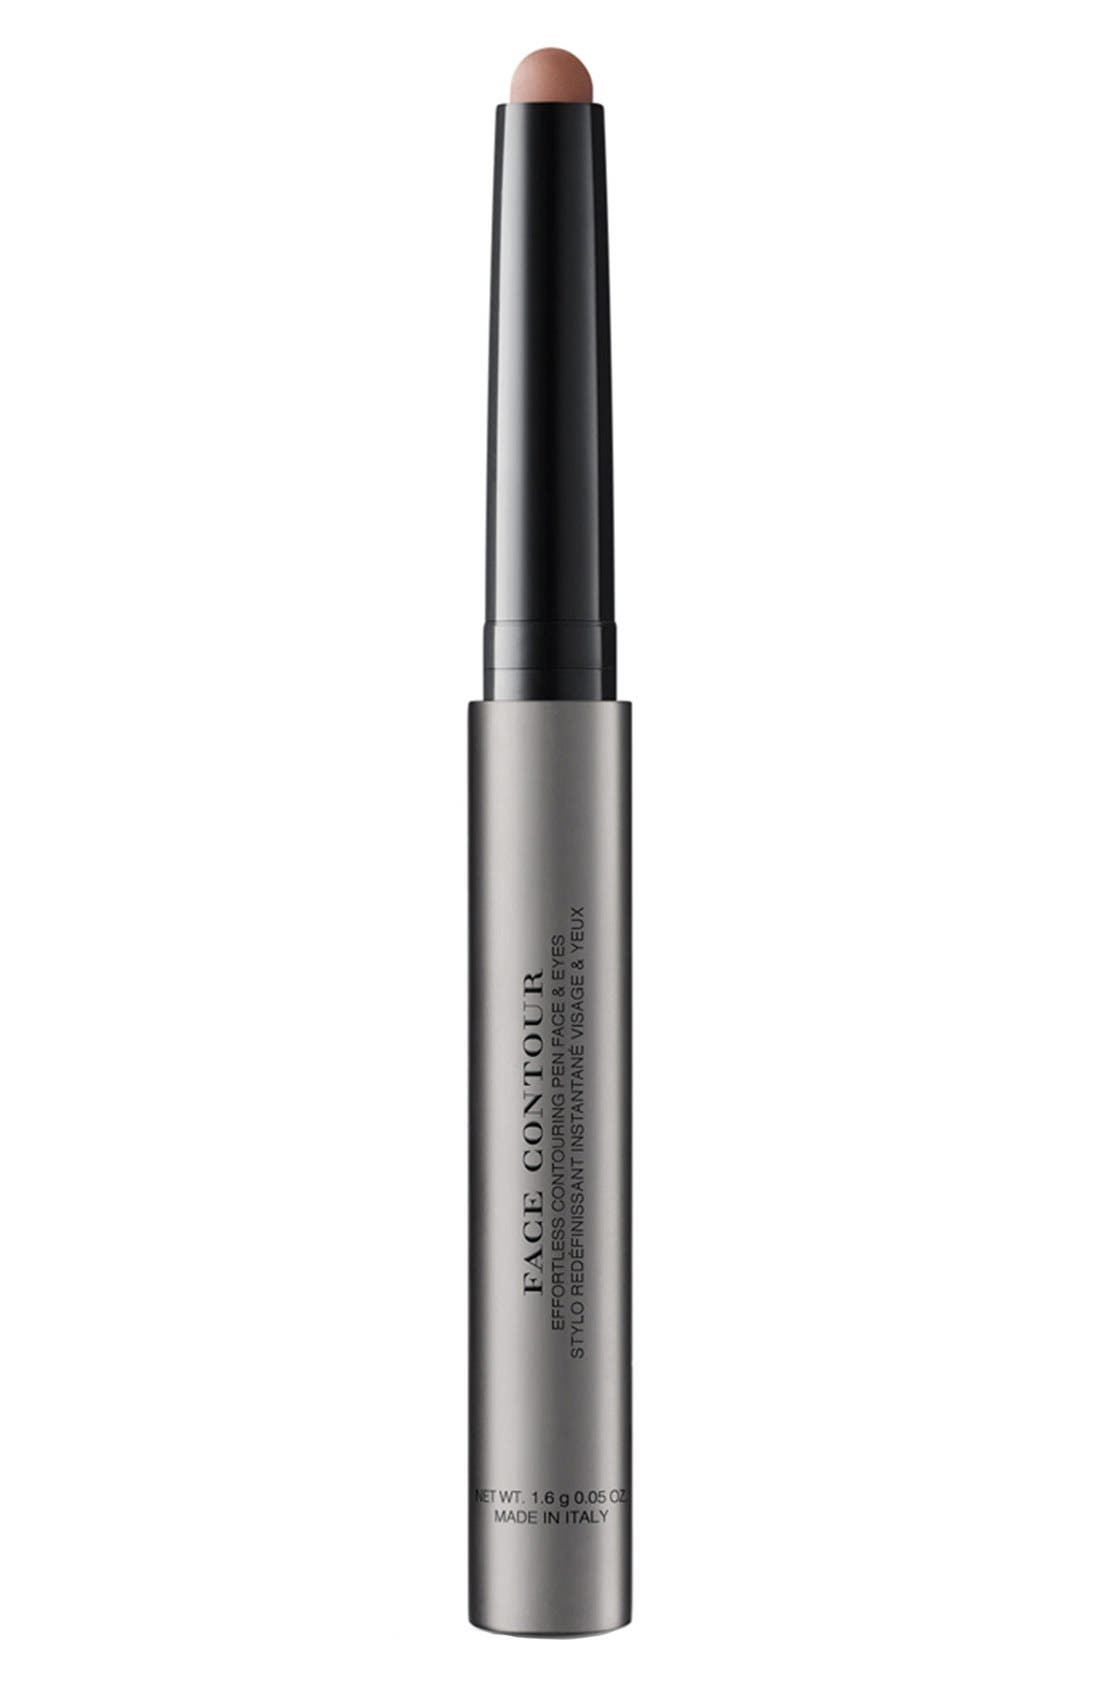 Burberry Beauty 'Face Contour' Effortless Contouring Pen for Face & Eyes